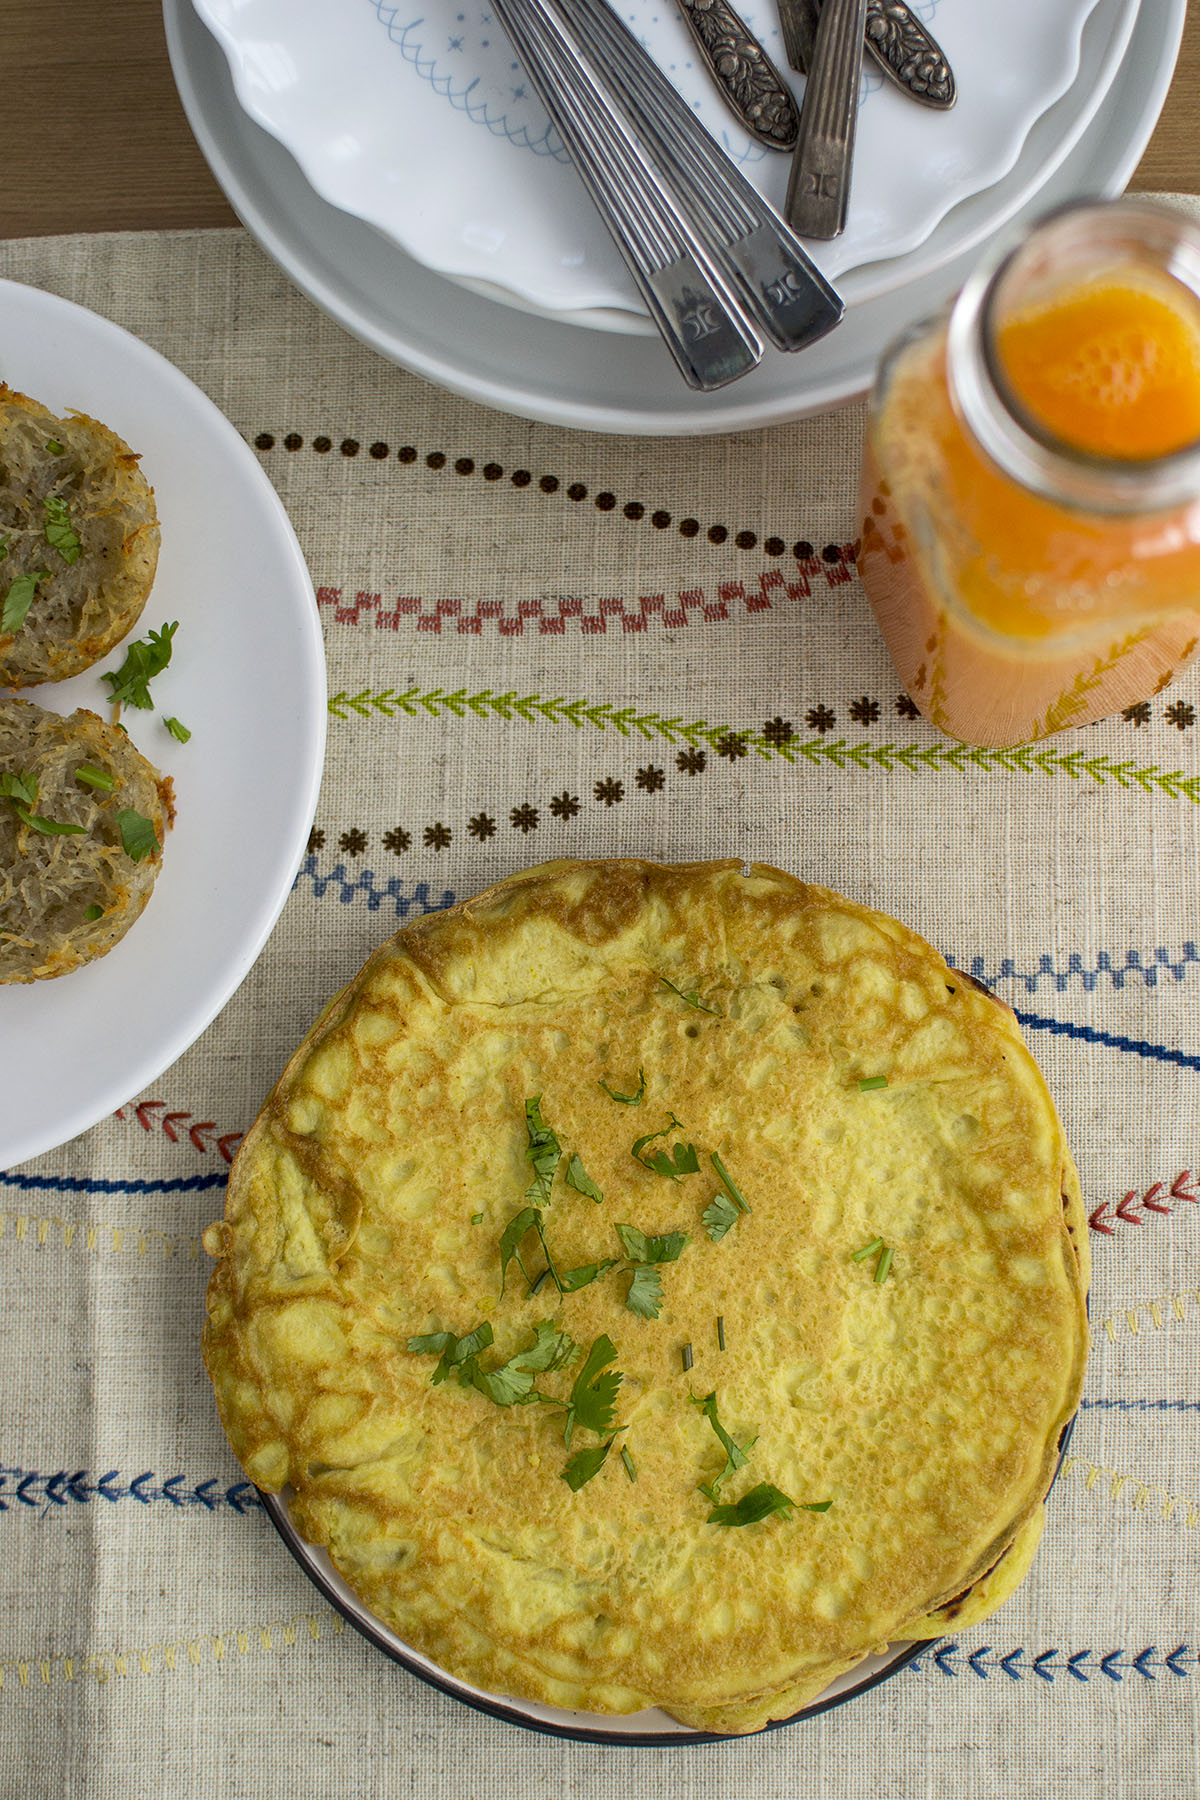 Plate with omelette with cilantro garnish